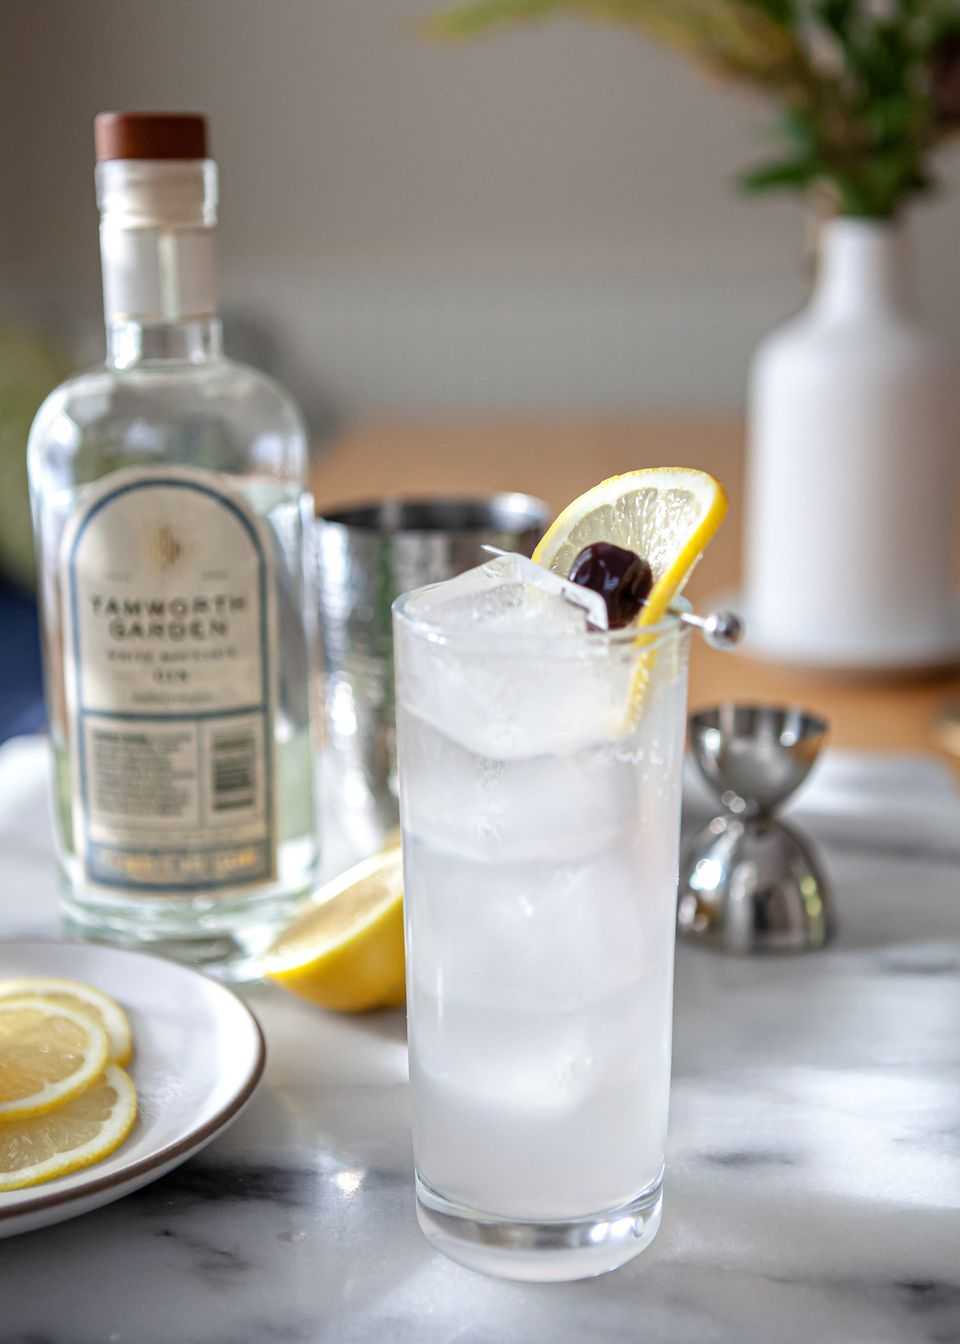 Tom Collins cocktail garnished with lemon and on a table with a bottle of gin.